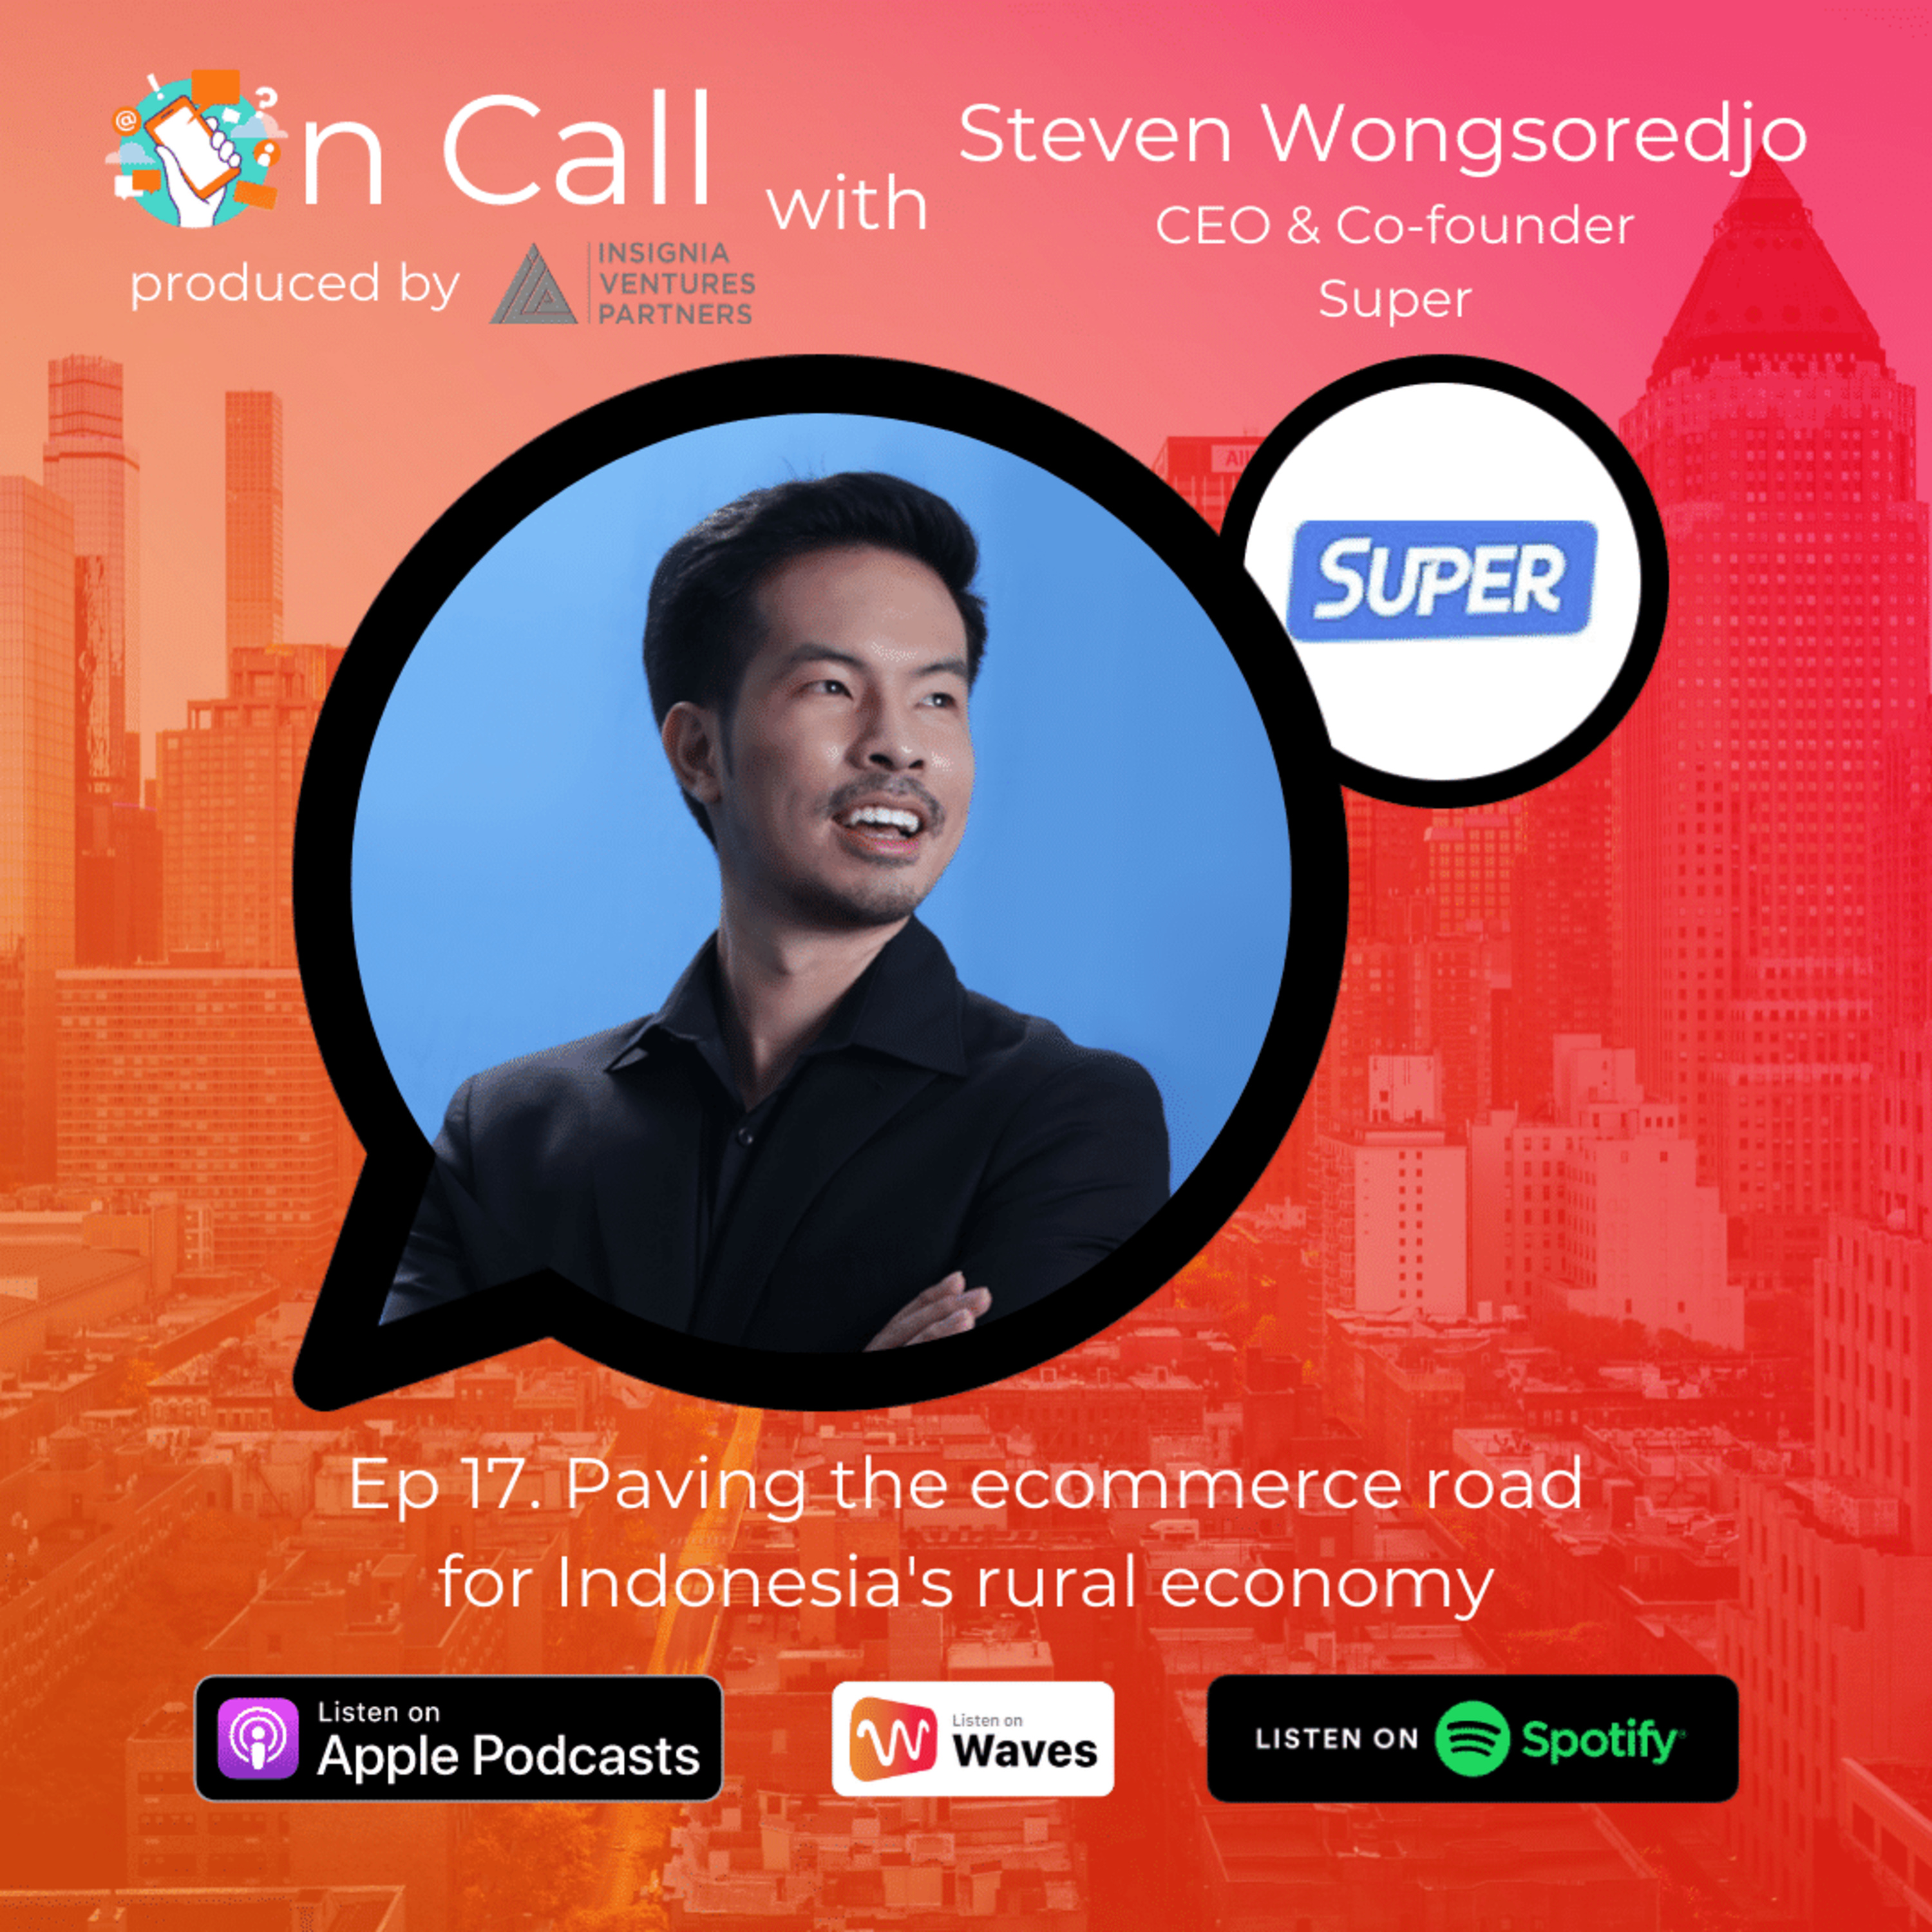 Paving the ecommerce road in Indonesia's rural economy: On Call with Super CEO and founder Steven Wongsoredjo